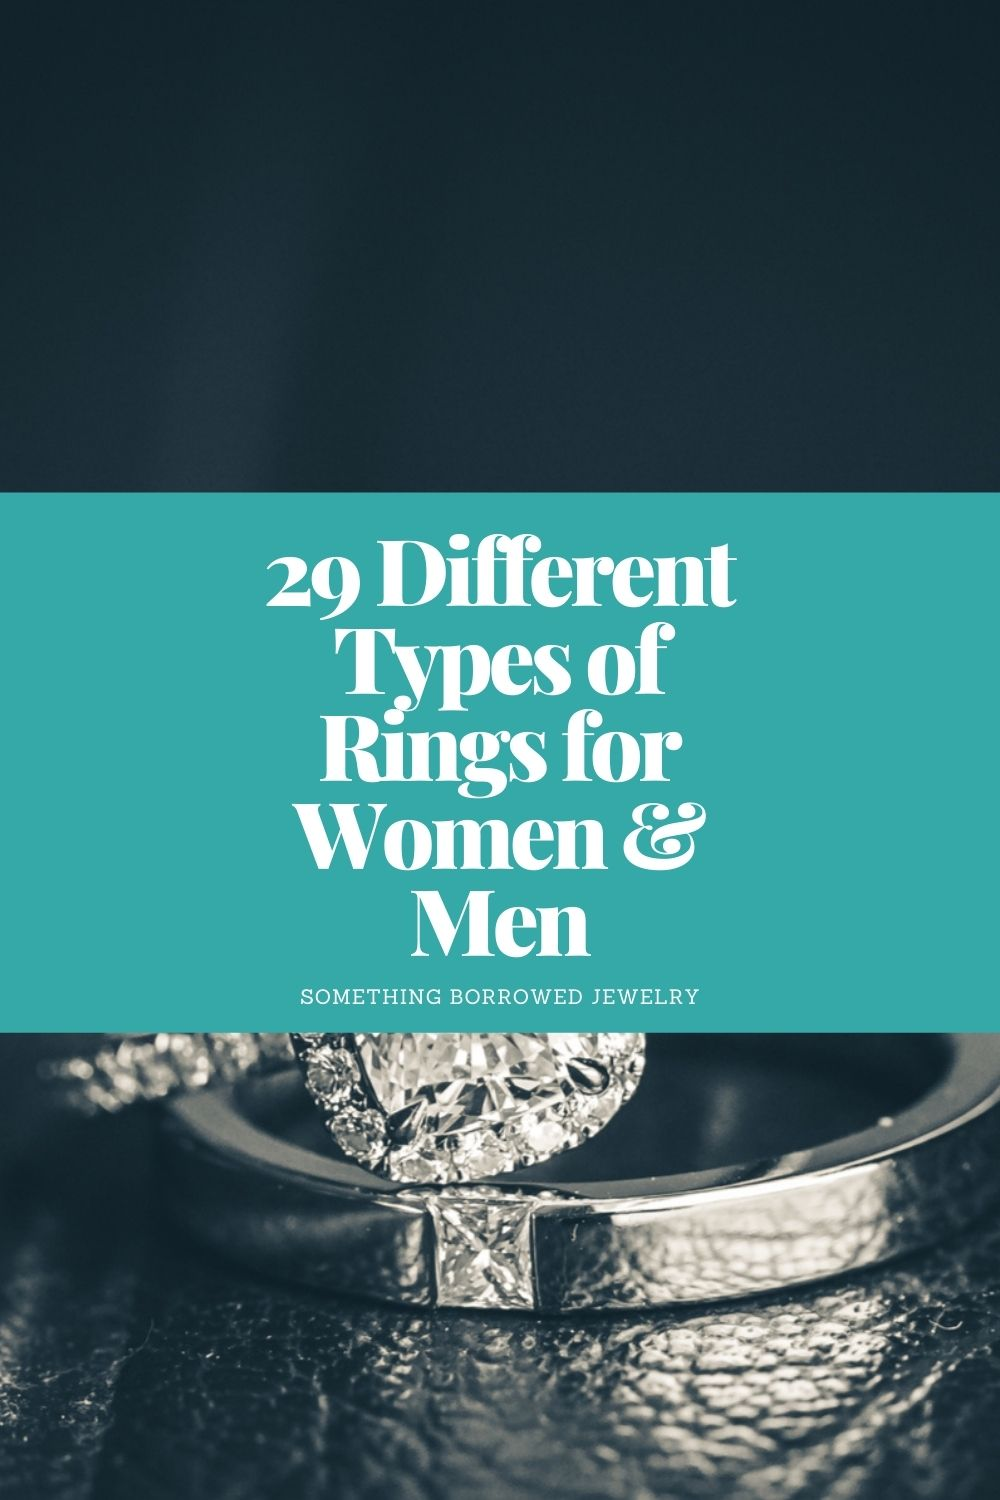 29 Different Types of Rings for Women & Men pin 2